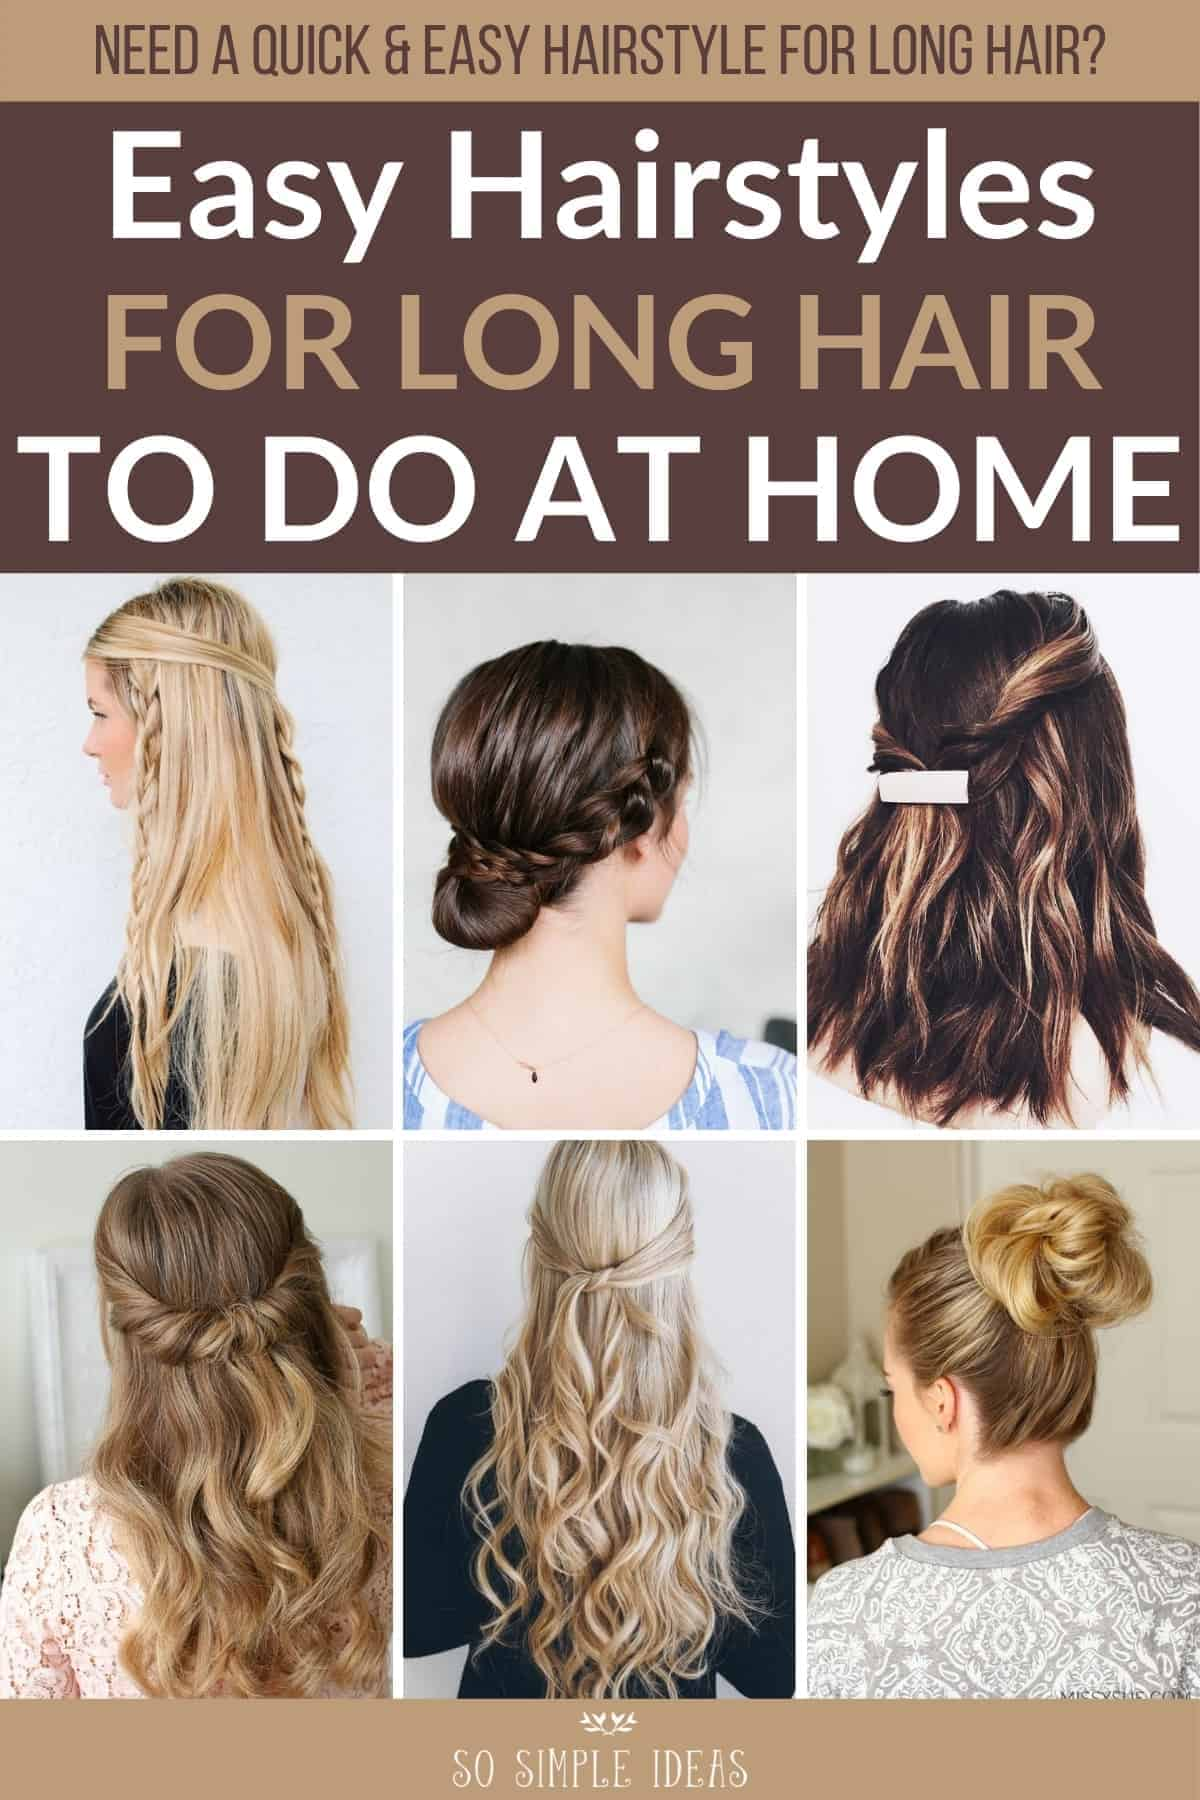 easy hairstyles for long hair to do at home pinterest image